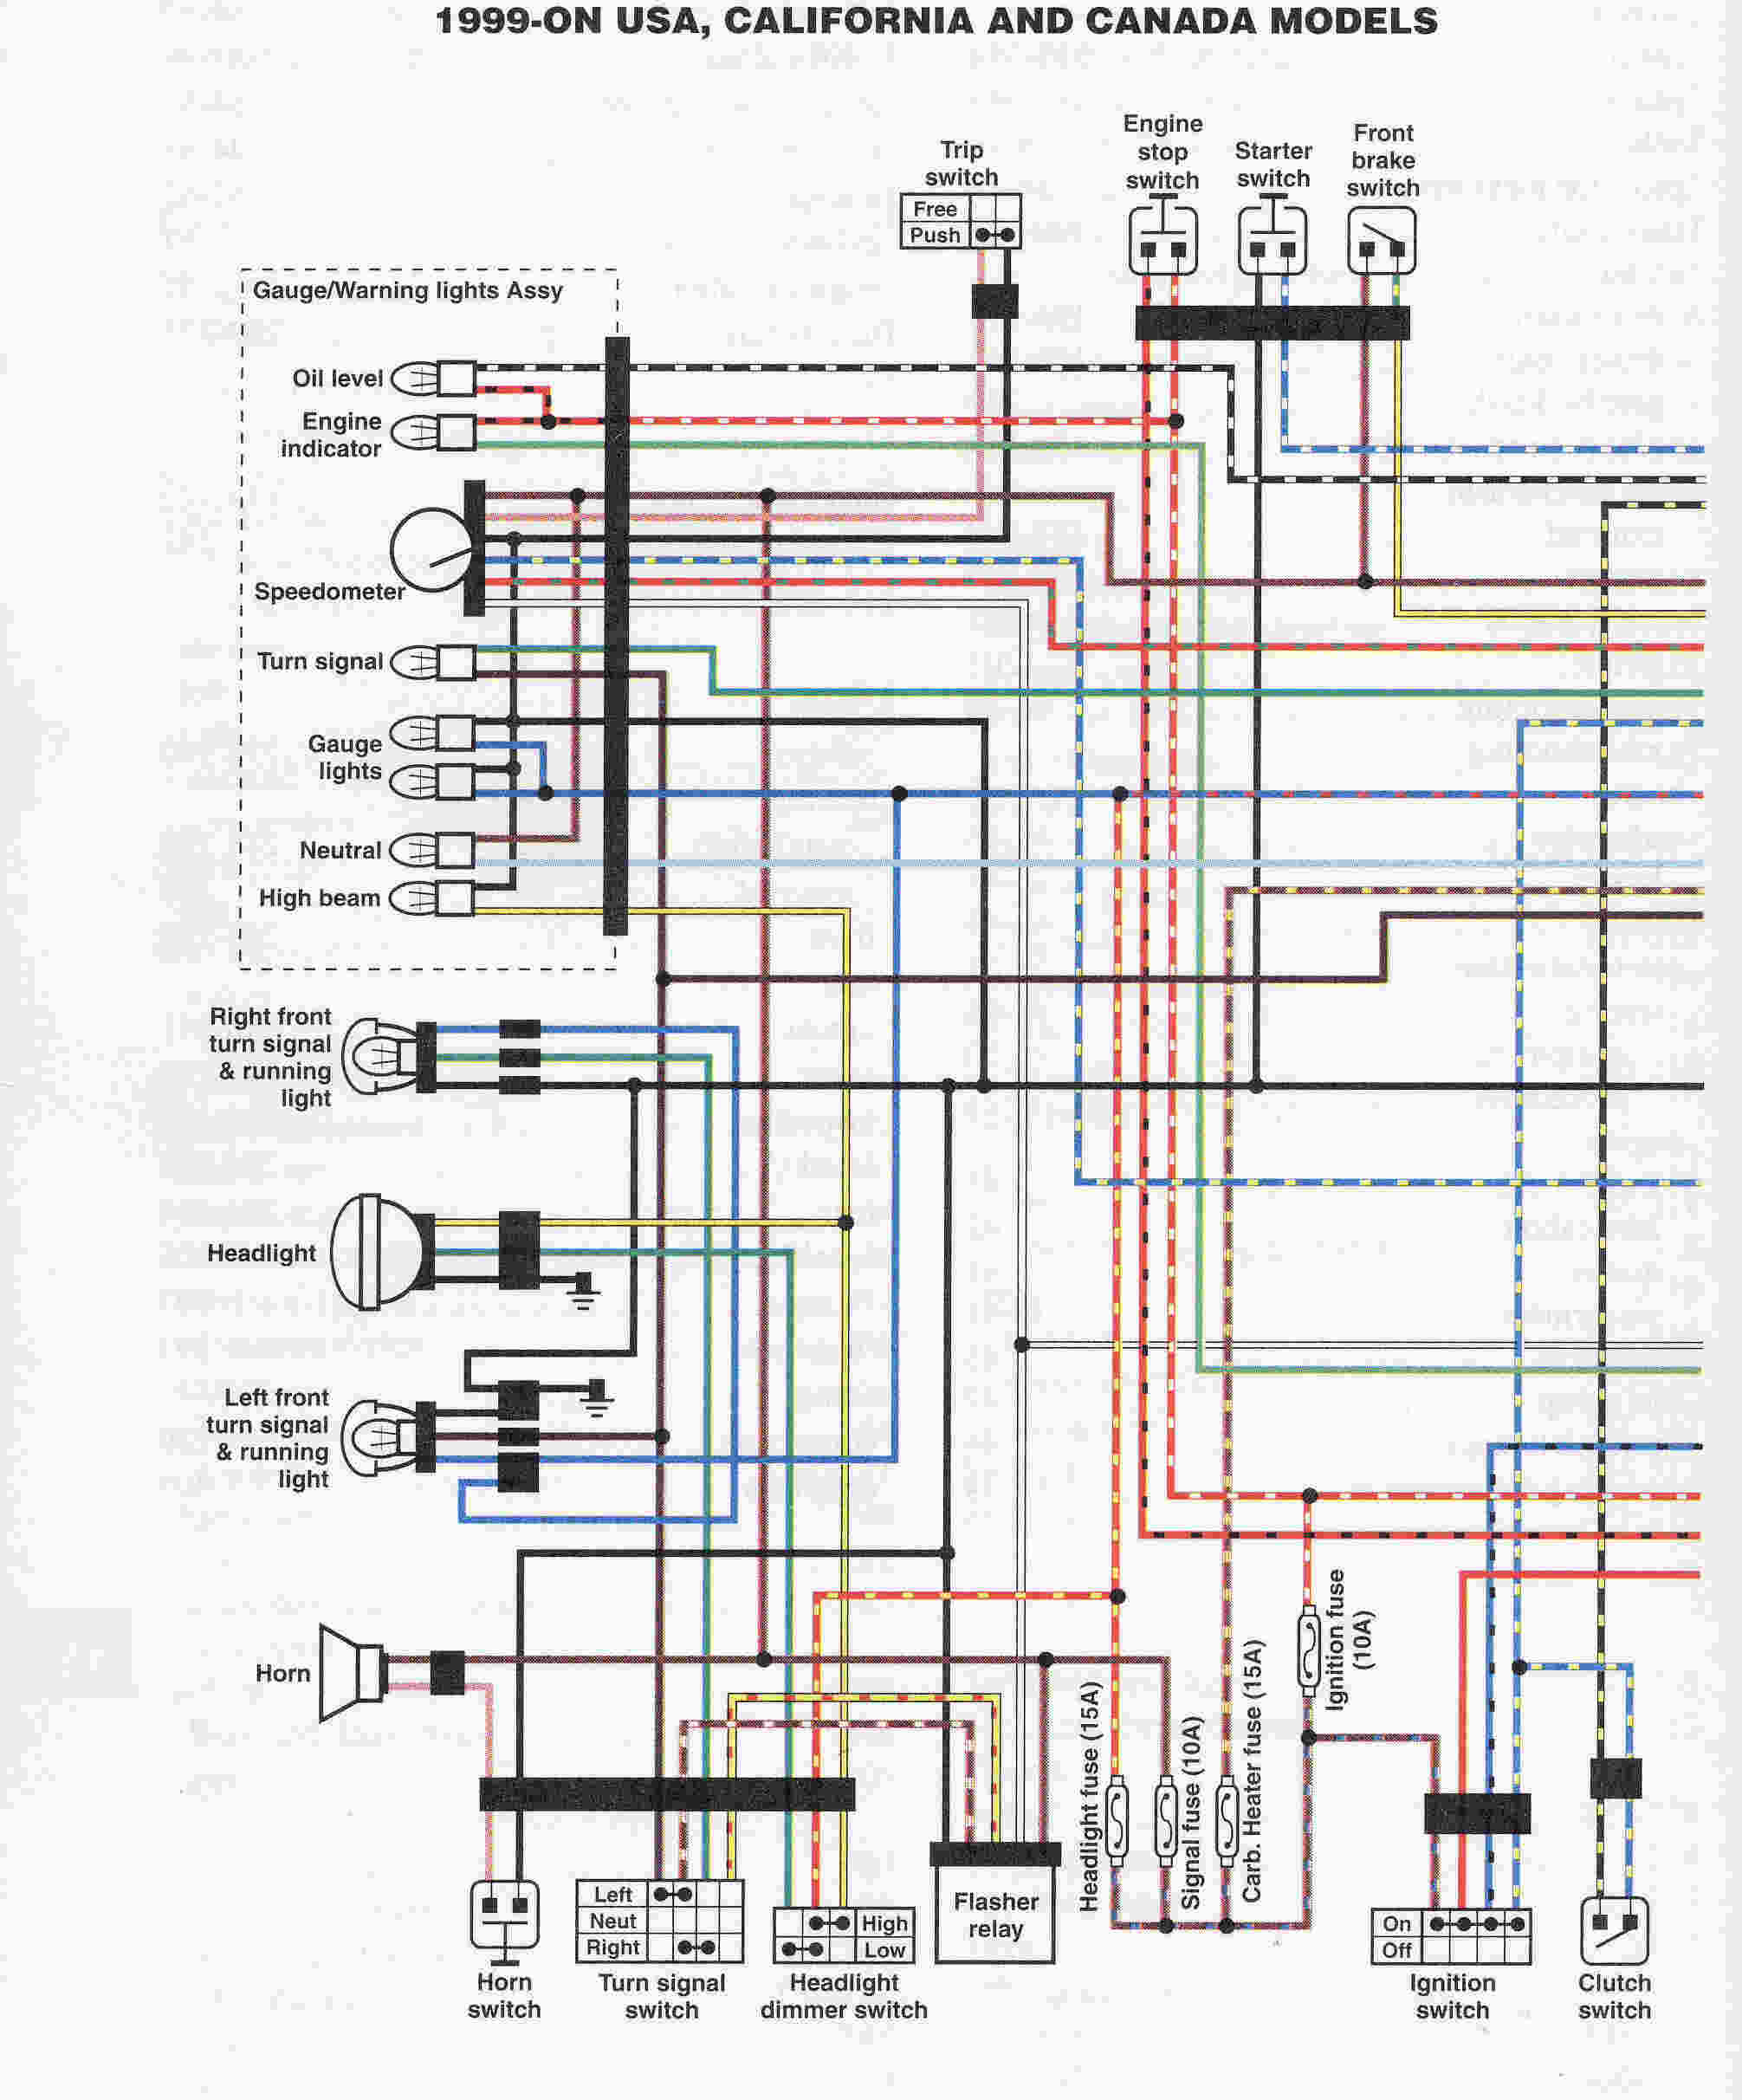 V Star 250 Wiring Diagram Free For You Western Fuse Blogs Rh 19 1 2 Restaurant Freinsheimer Hof De Configuration Wire Vs Daisy